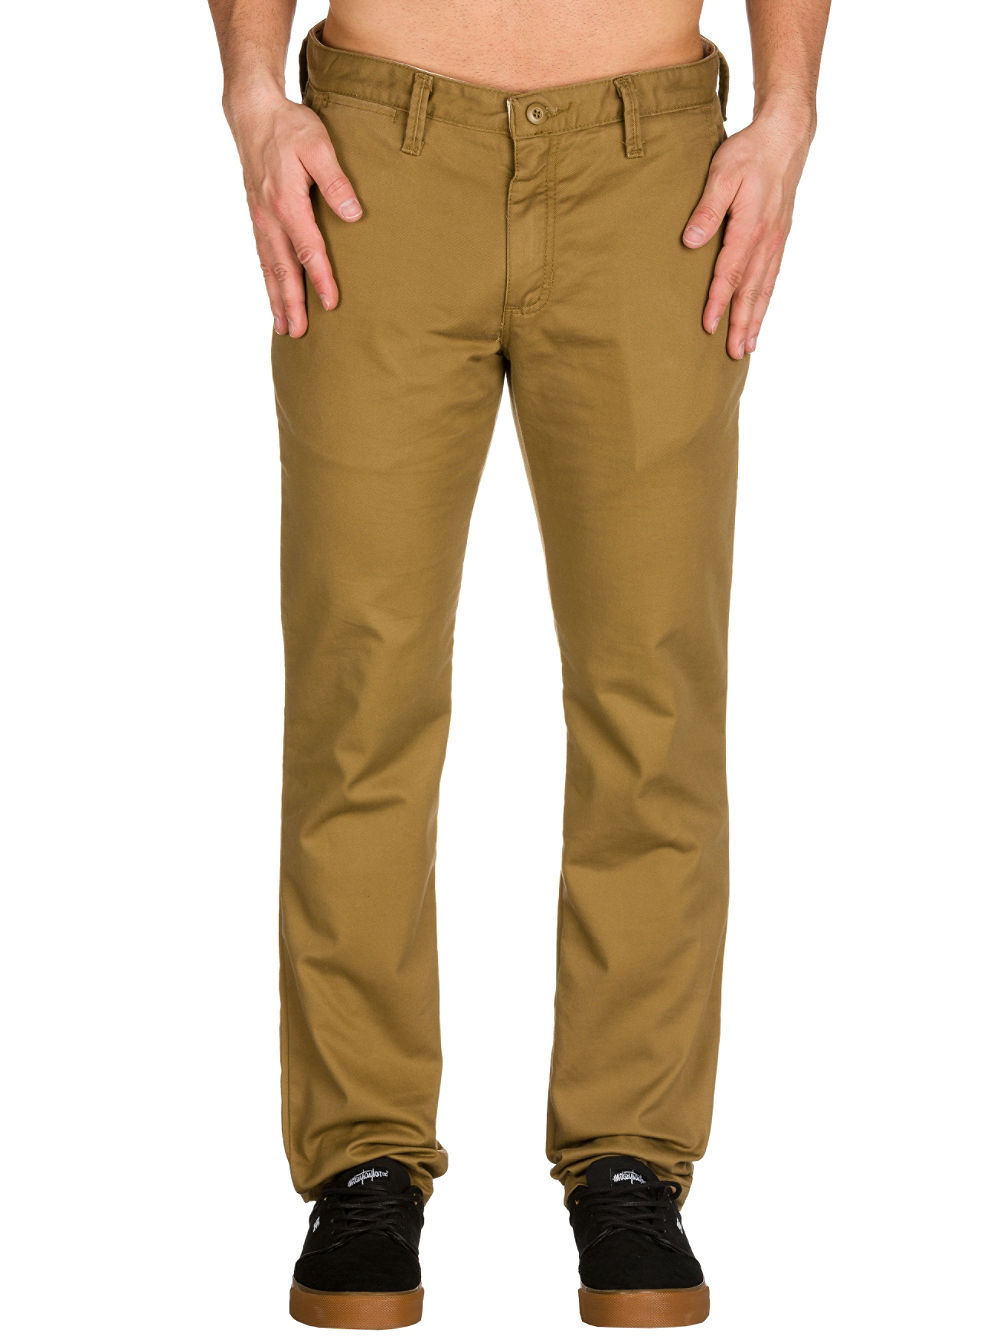 55c8712d09 Authentic Chino Stretch Pants